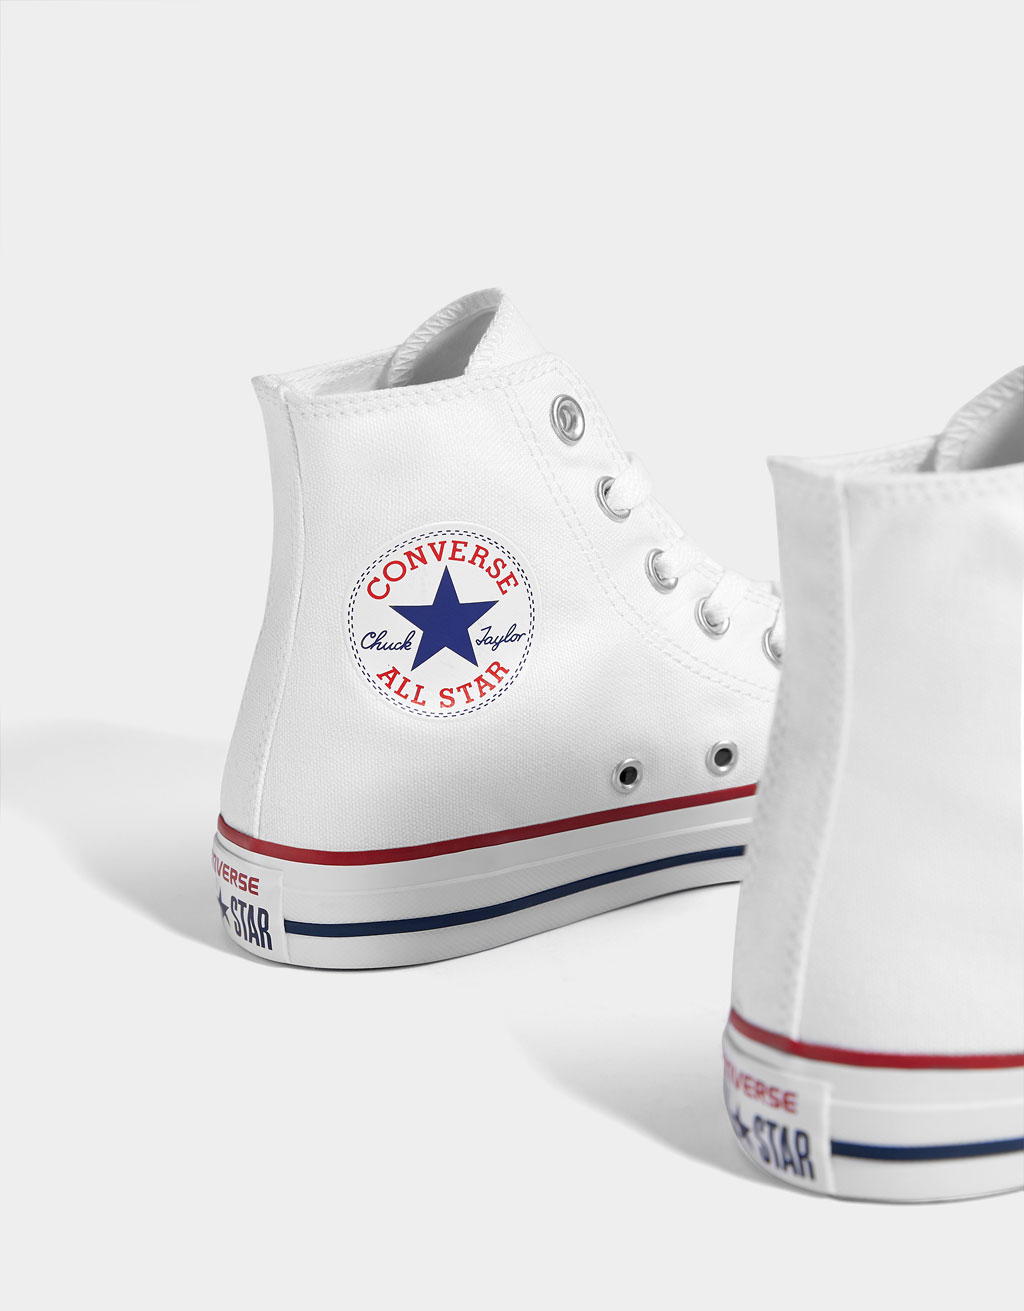 18abbbcafc7 CONVERSE CHUCK TAYLOR ALL STAR high top canvas sneakers - Trainers ...